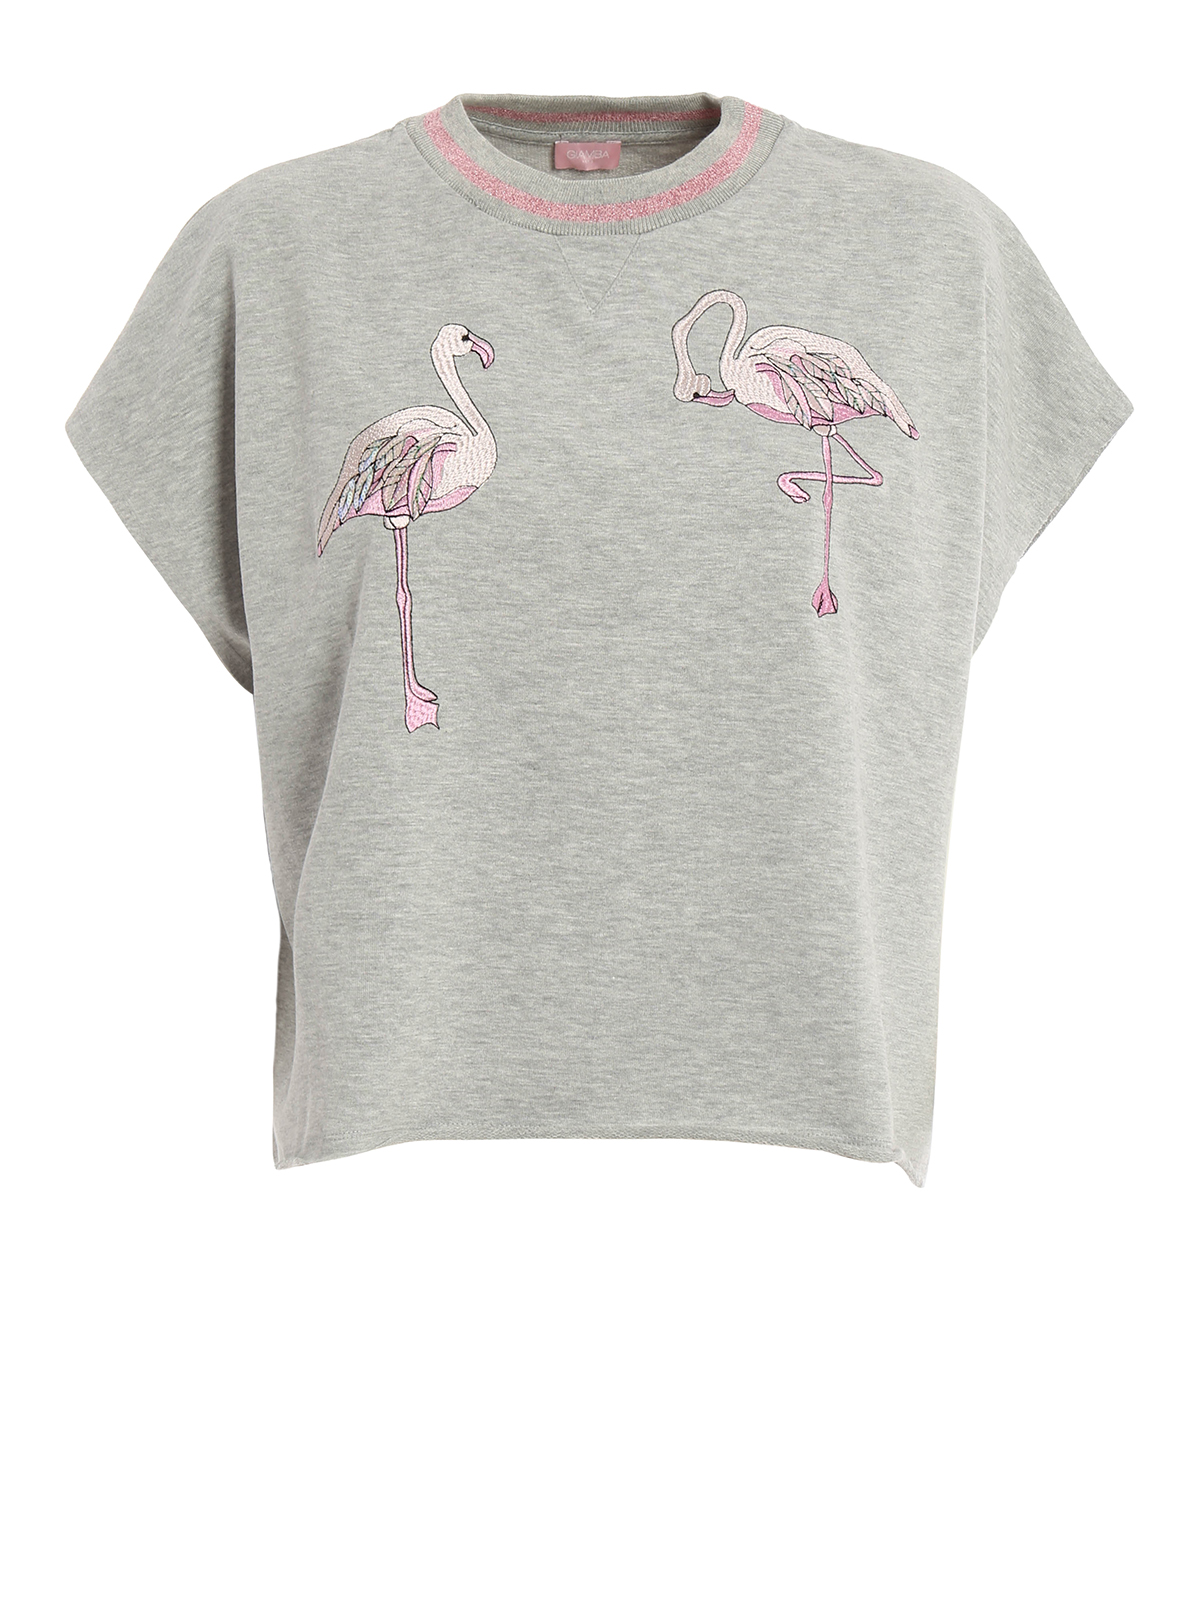 Embroidered flamingo t shirt by giamba t shirts ikrix for How to embroider t shirts